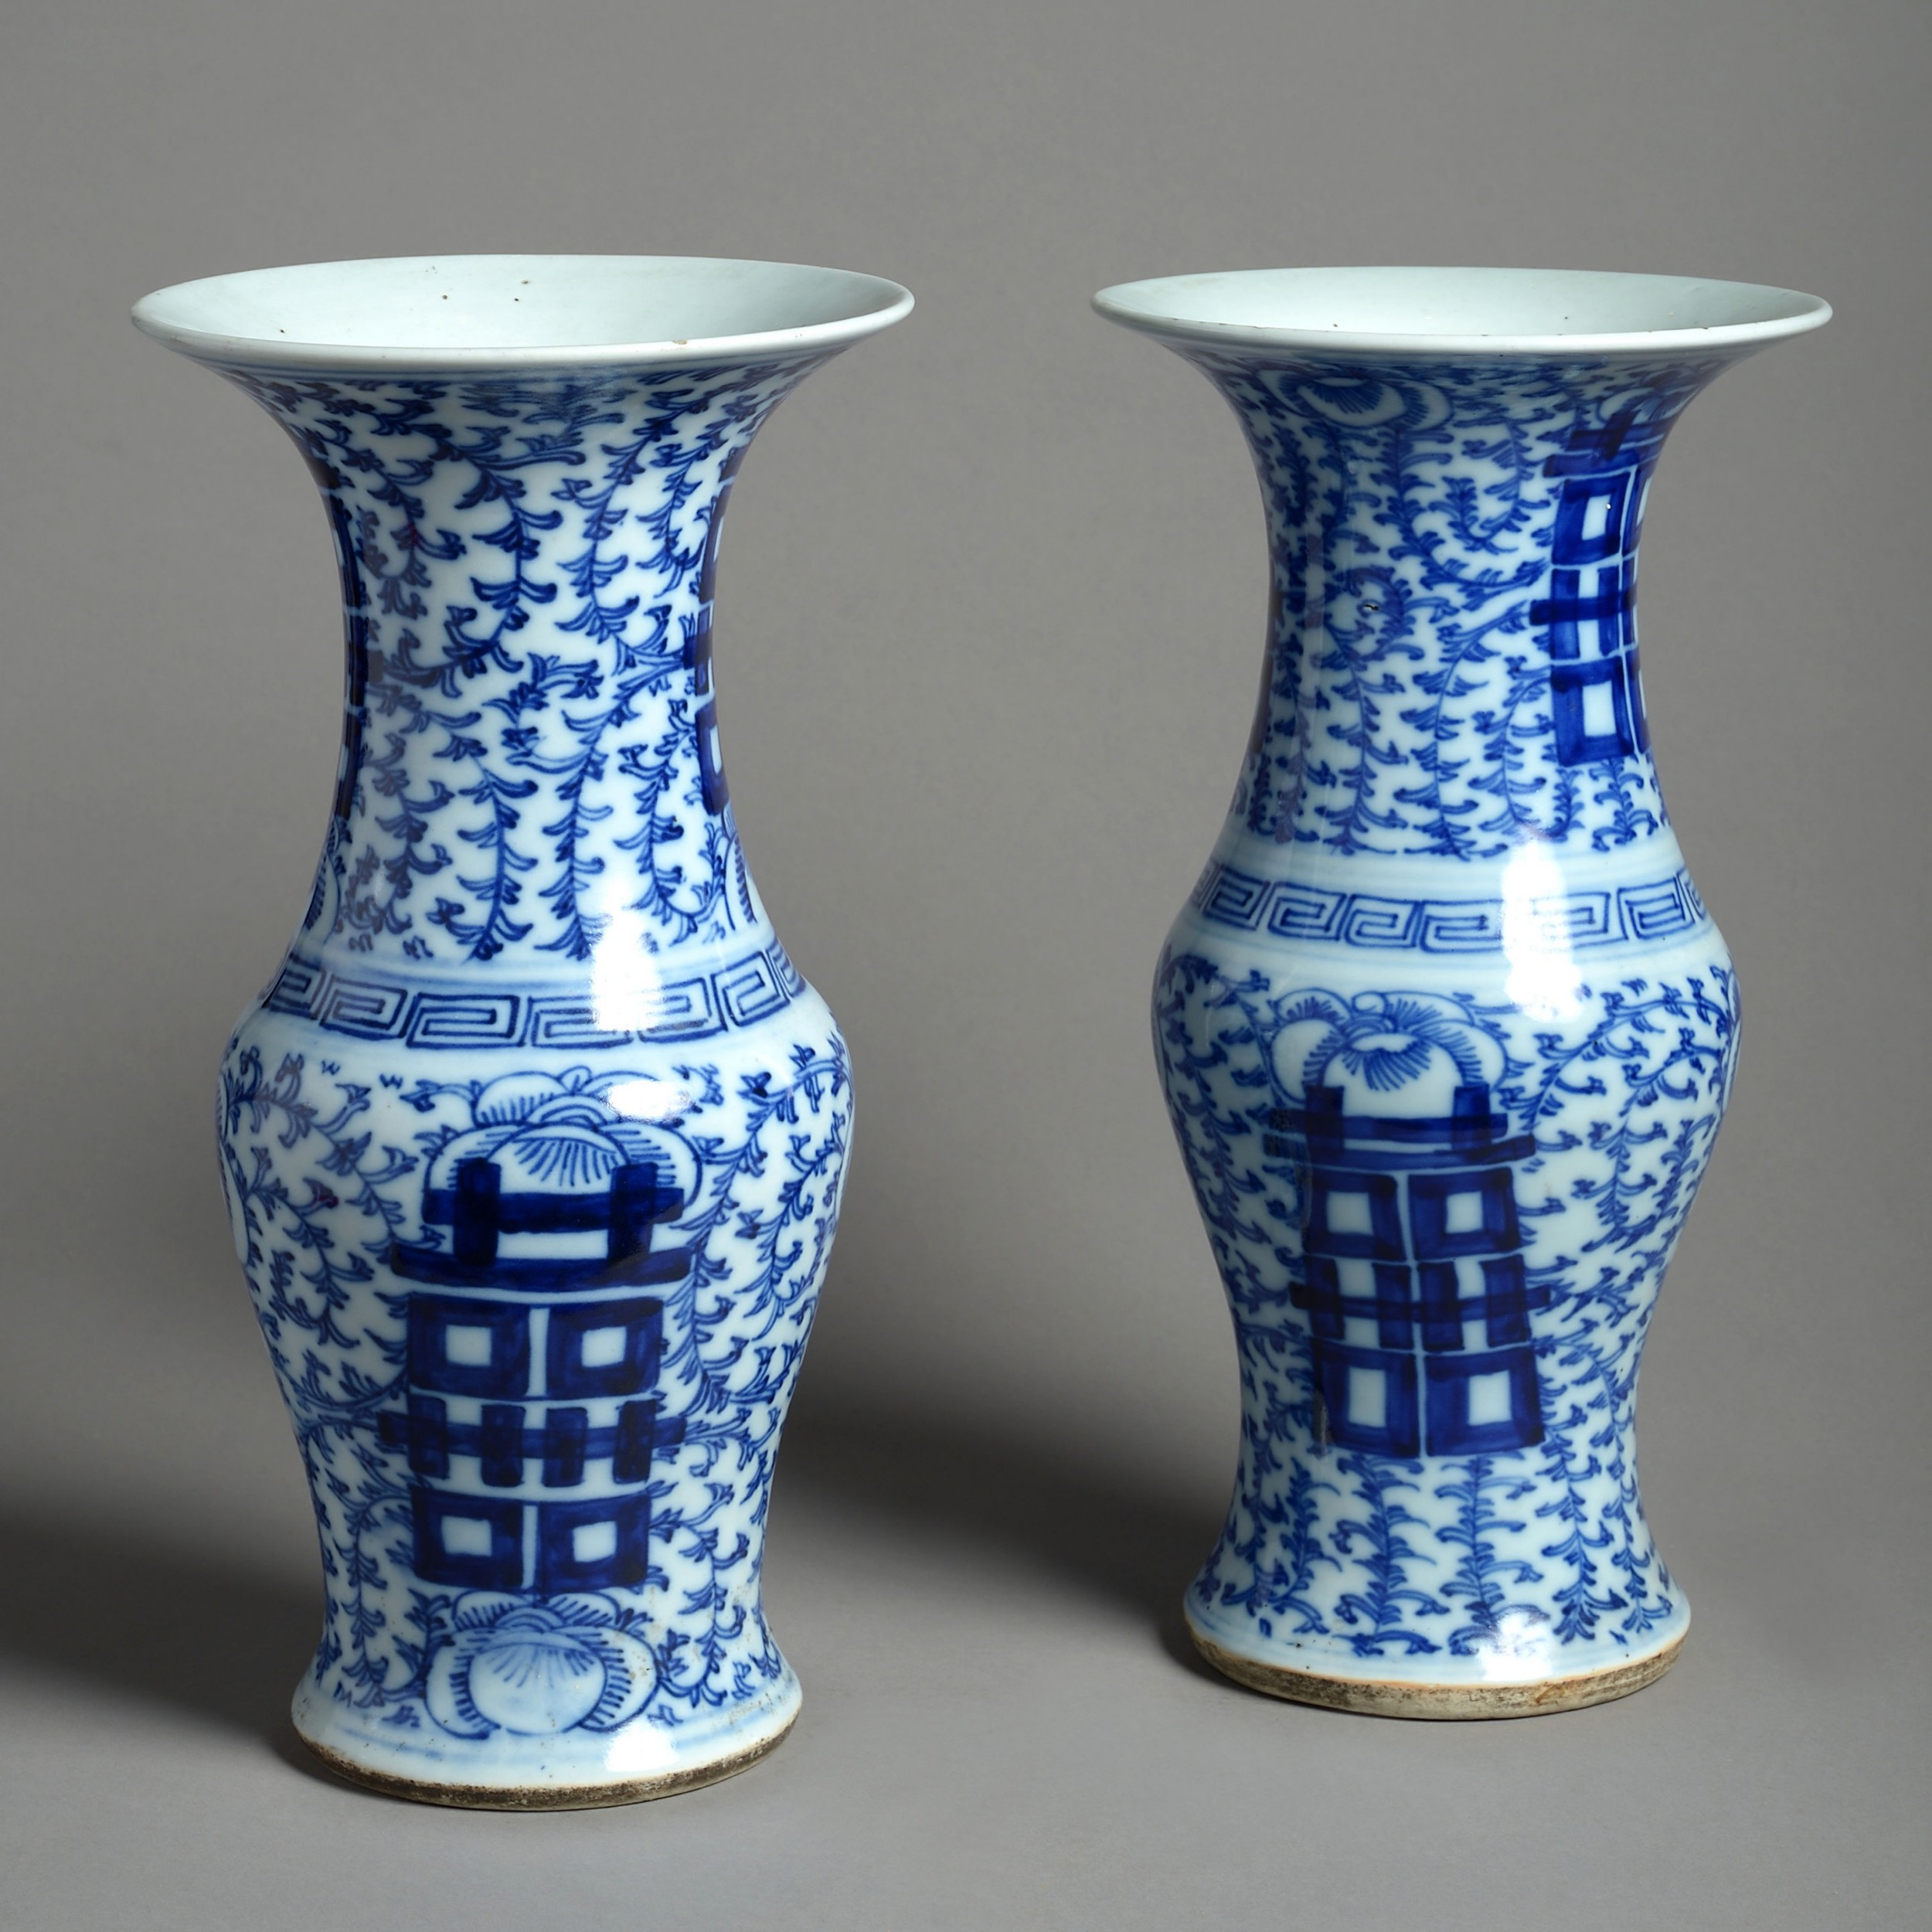 a 19th century pair of blue and white porcelain trumpet vases